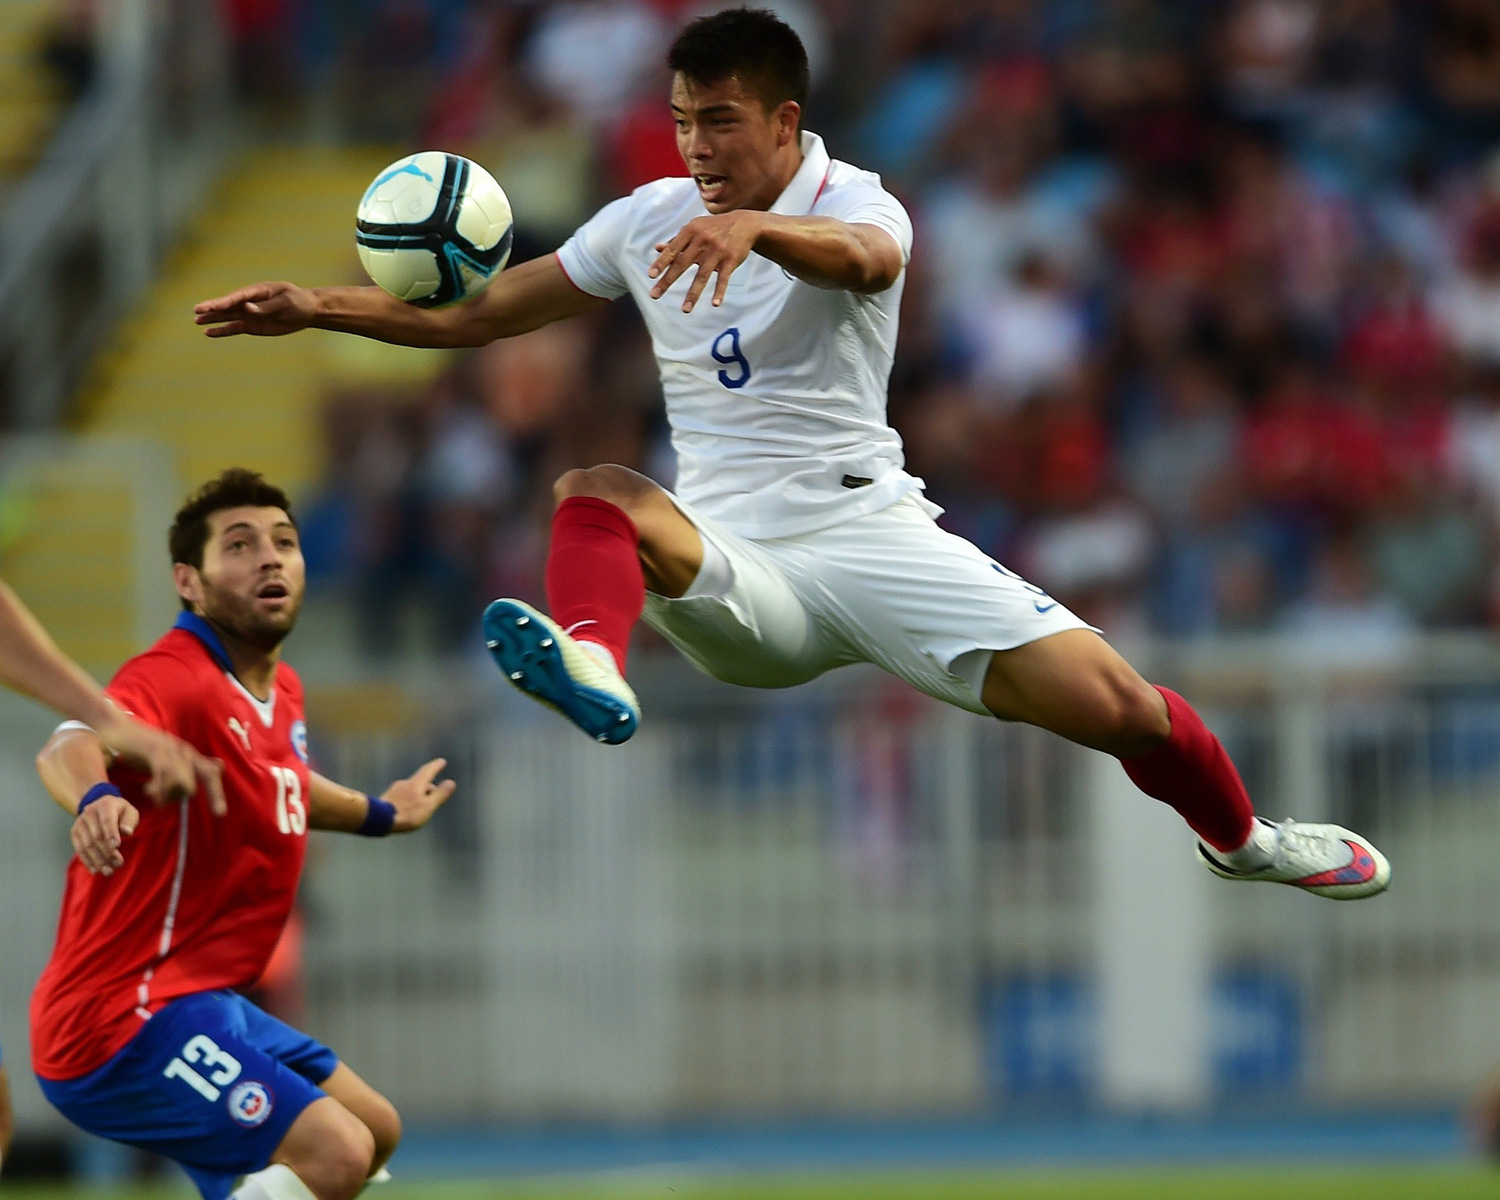 Bobby Wood flies high in the USA's 3-2 loss to Chile, which opened the calendar year for the national team. Brek Shea and Jozy Altidore scored in the loss.